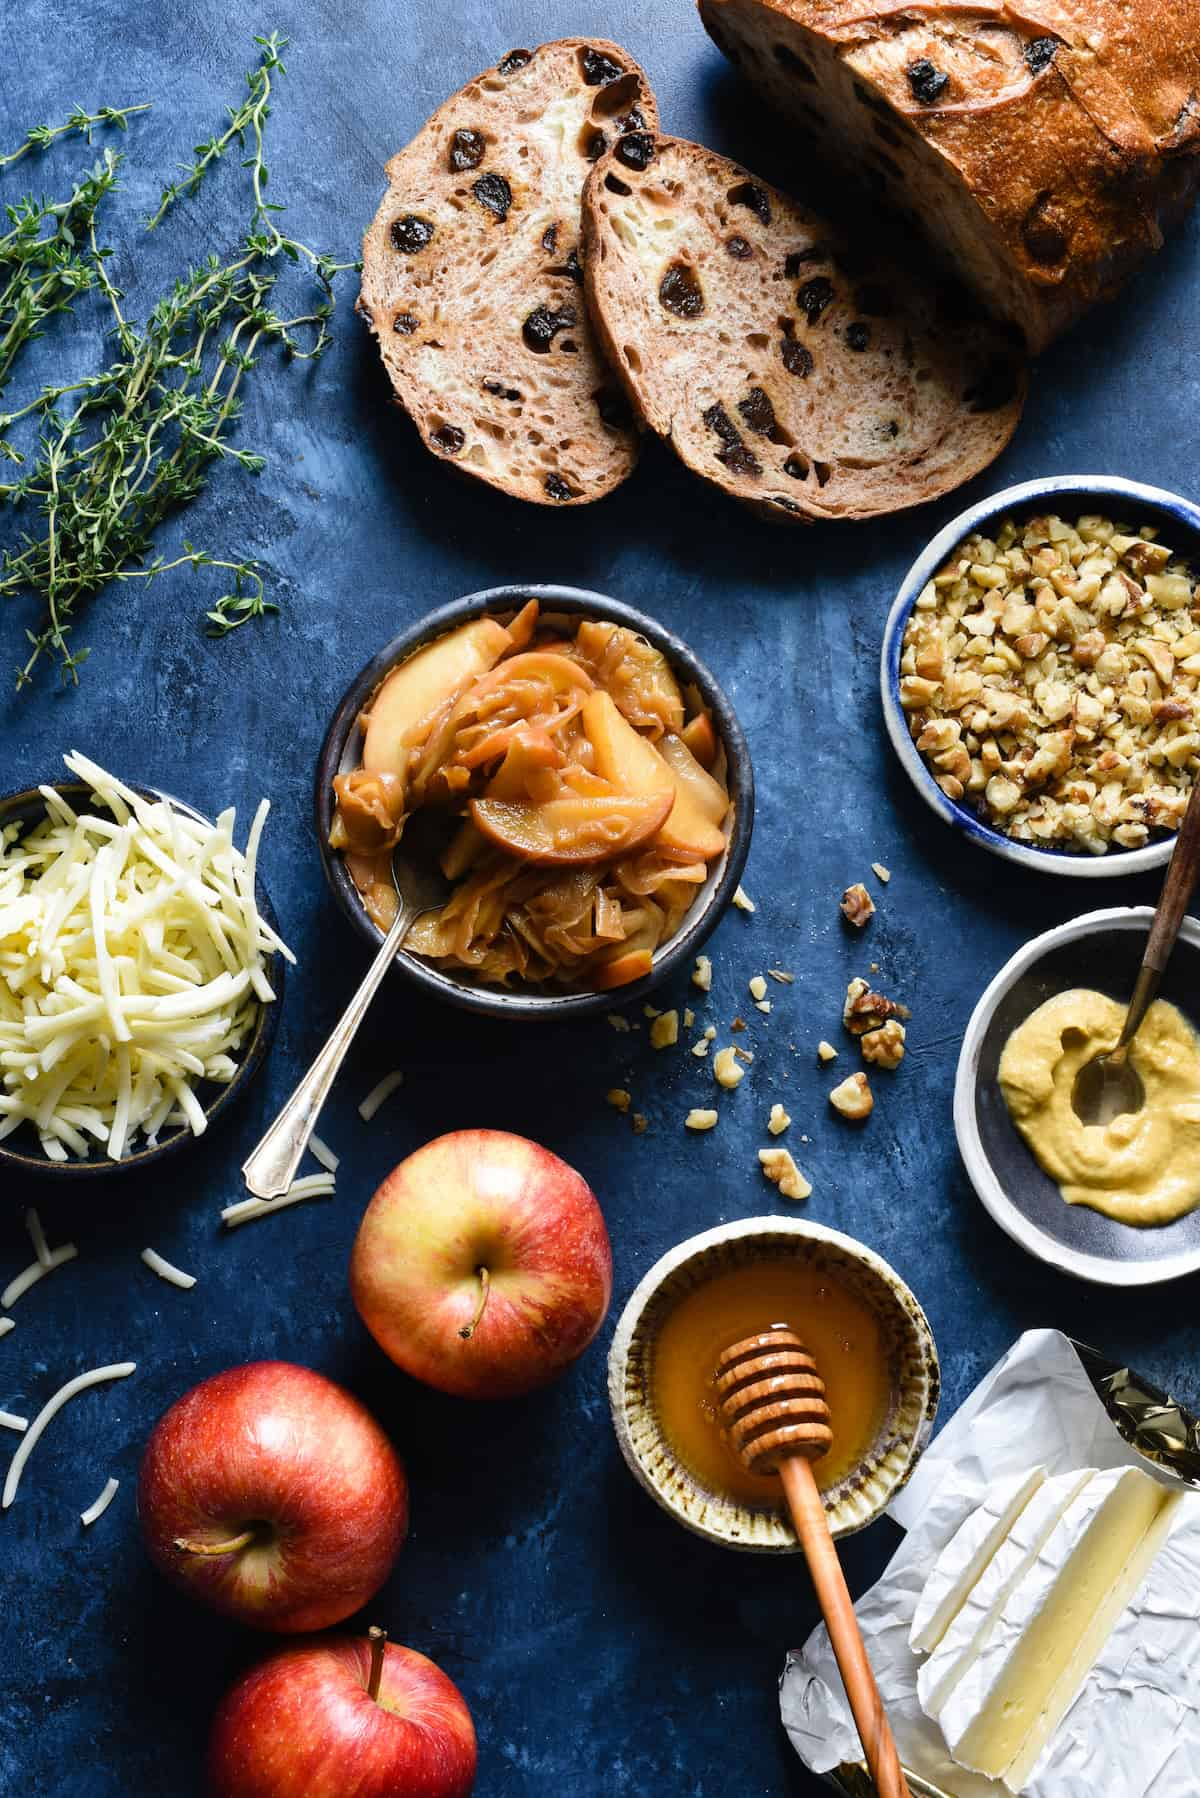 This Apple Grilled Cheese is an irresistible combination of sautéed apples, sweet caramelized onions, brie and white cheddar cheeses, Dijon mustard and walnuts. It's the best toasted sandwich you've ever made at home!   foxeslovelemons.com